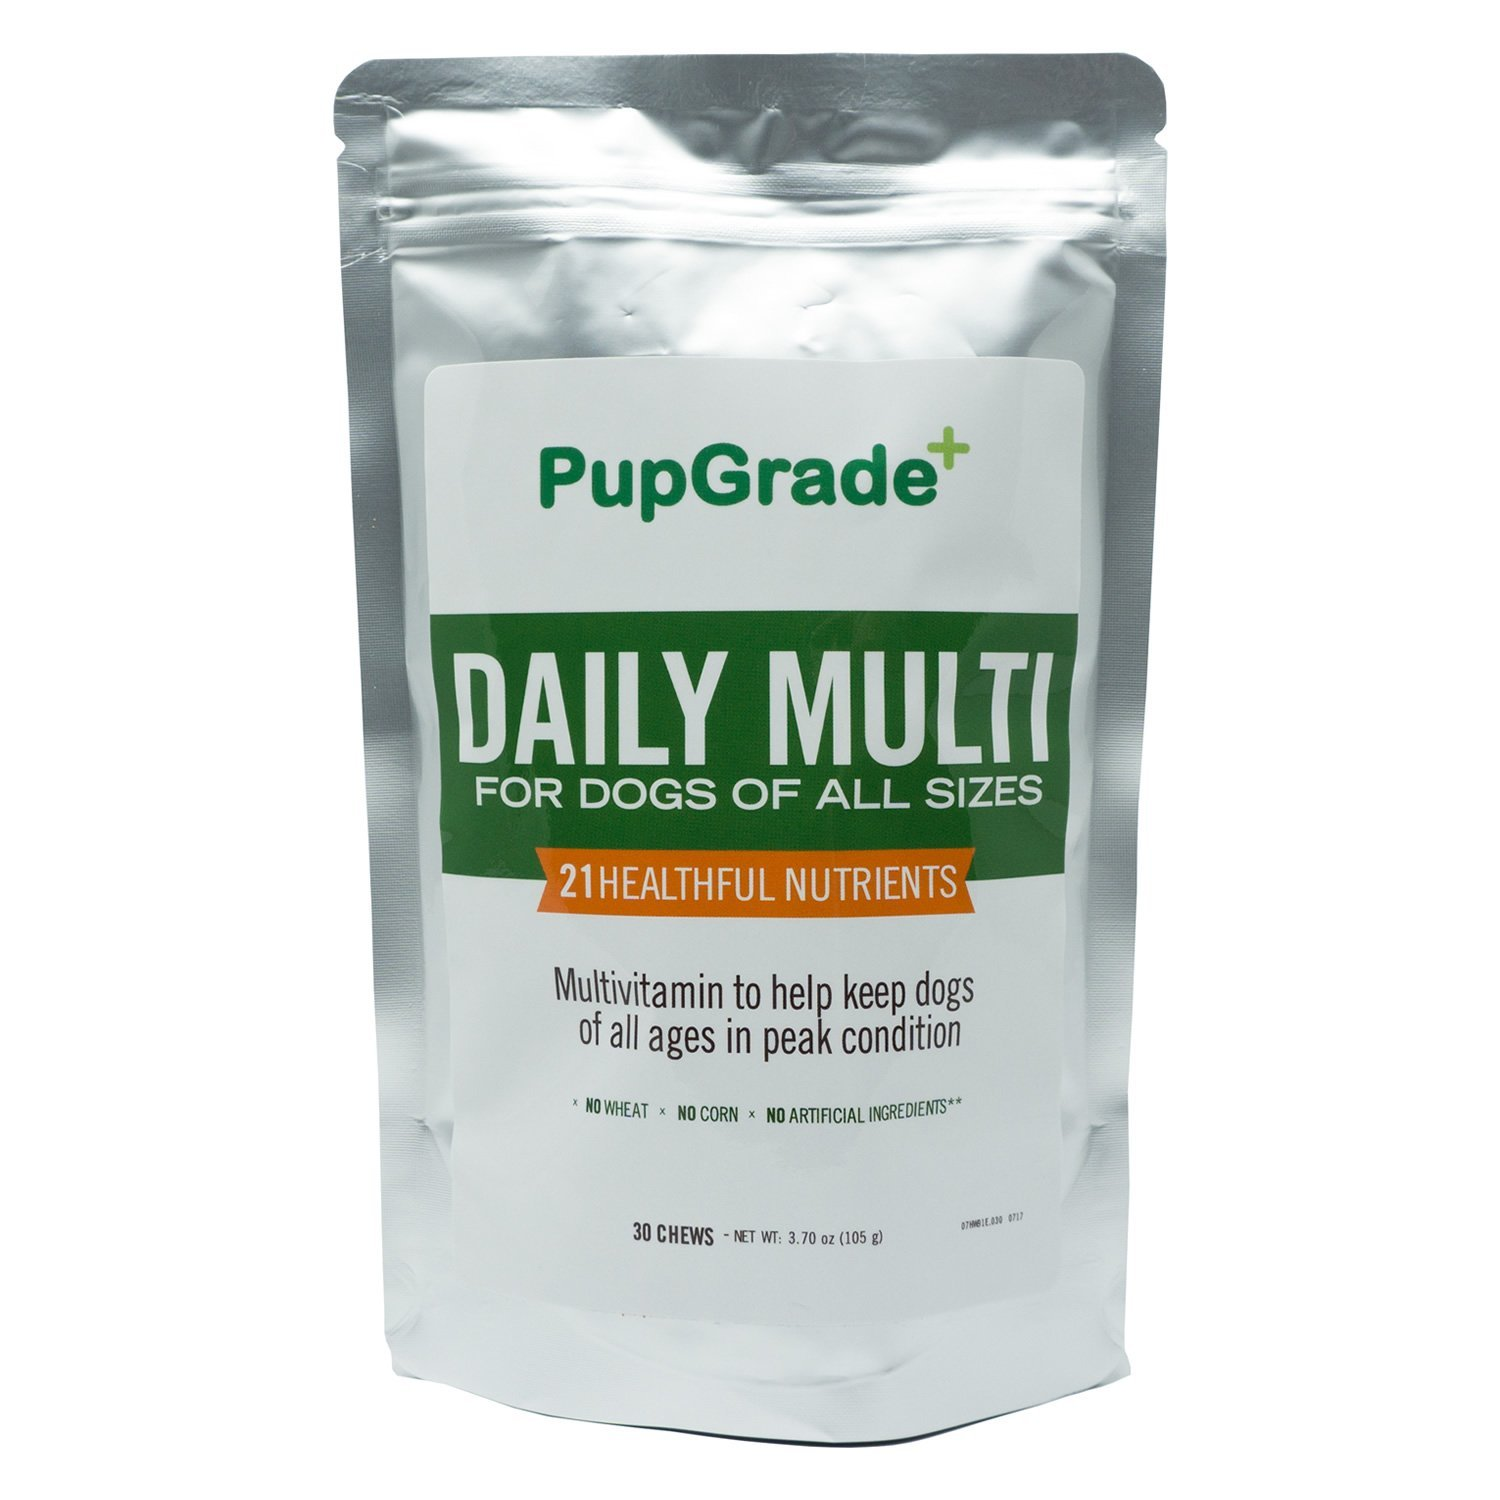 PupGrade Dog Vitamins - Best Daily Multi Vitamin for Dogs, Probiotic Enzymes, Fish Oil (Omega 3 6 9) for Skin & Coat, Vitamins A, C, D & E, All Natural Treats, Made in USA